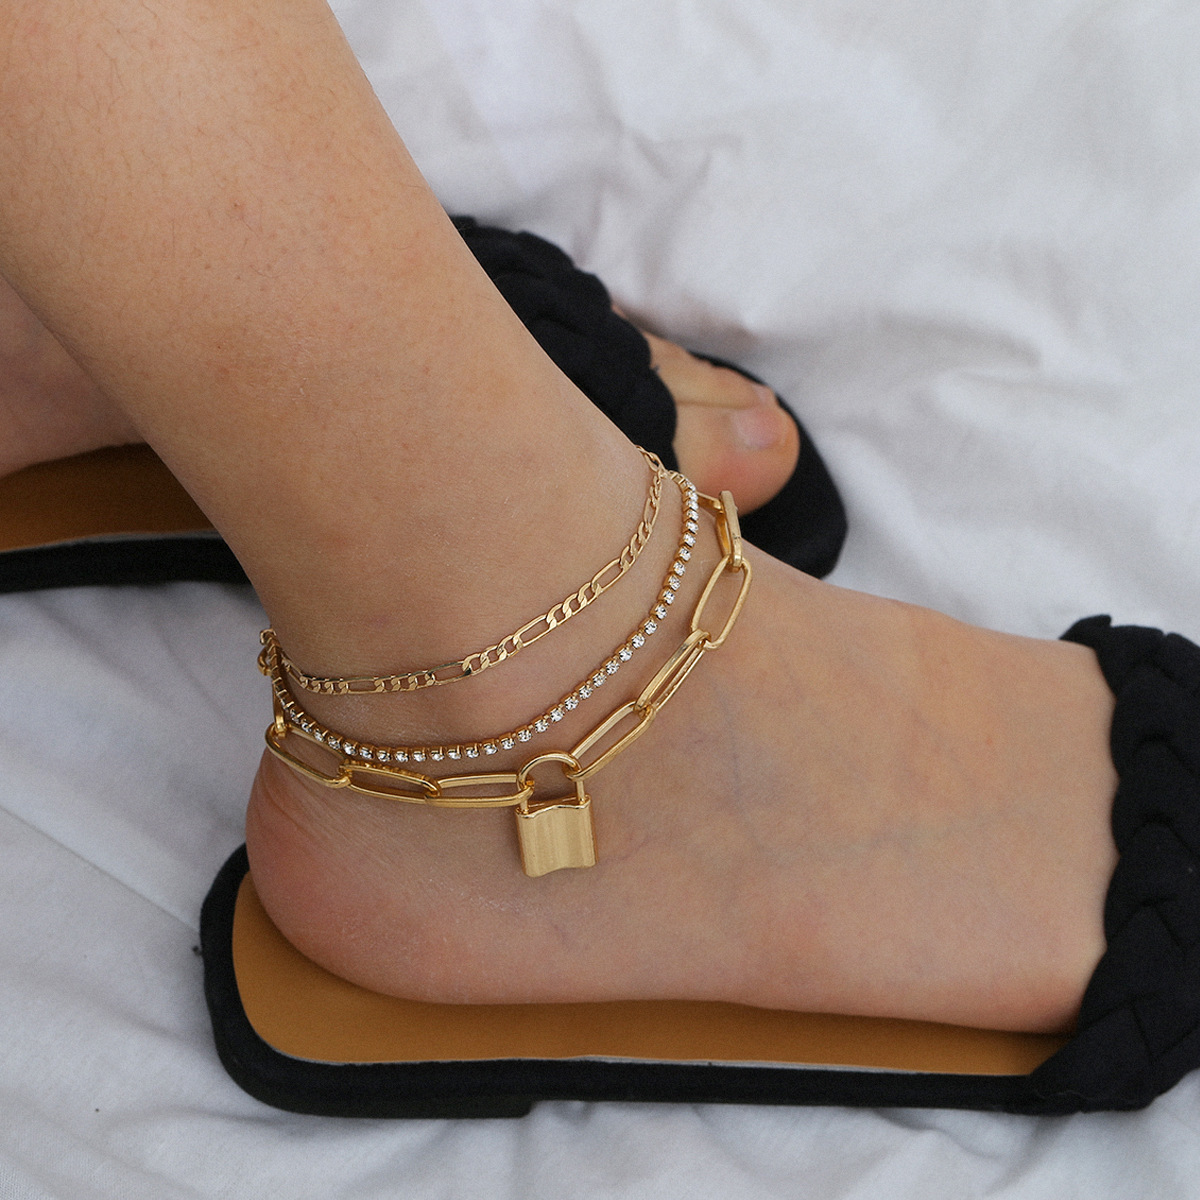 Enthralling Alloy Ankle Chain for Foot Beautification